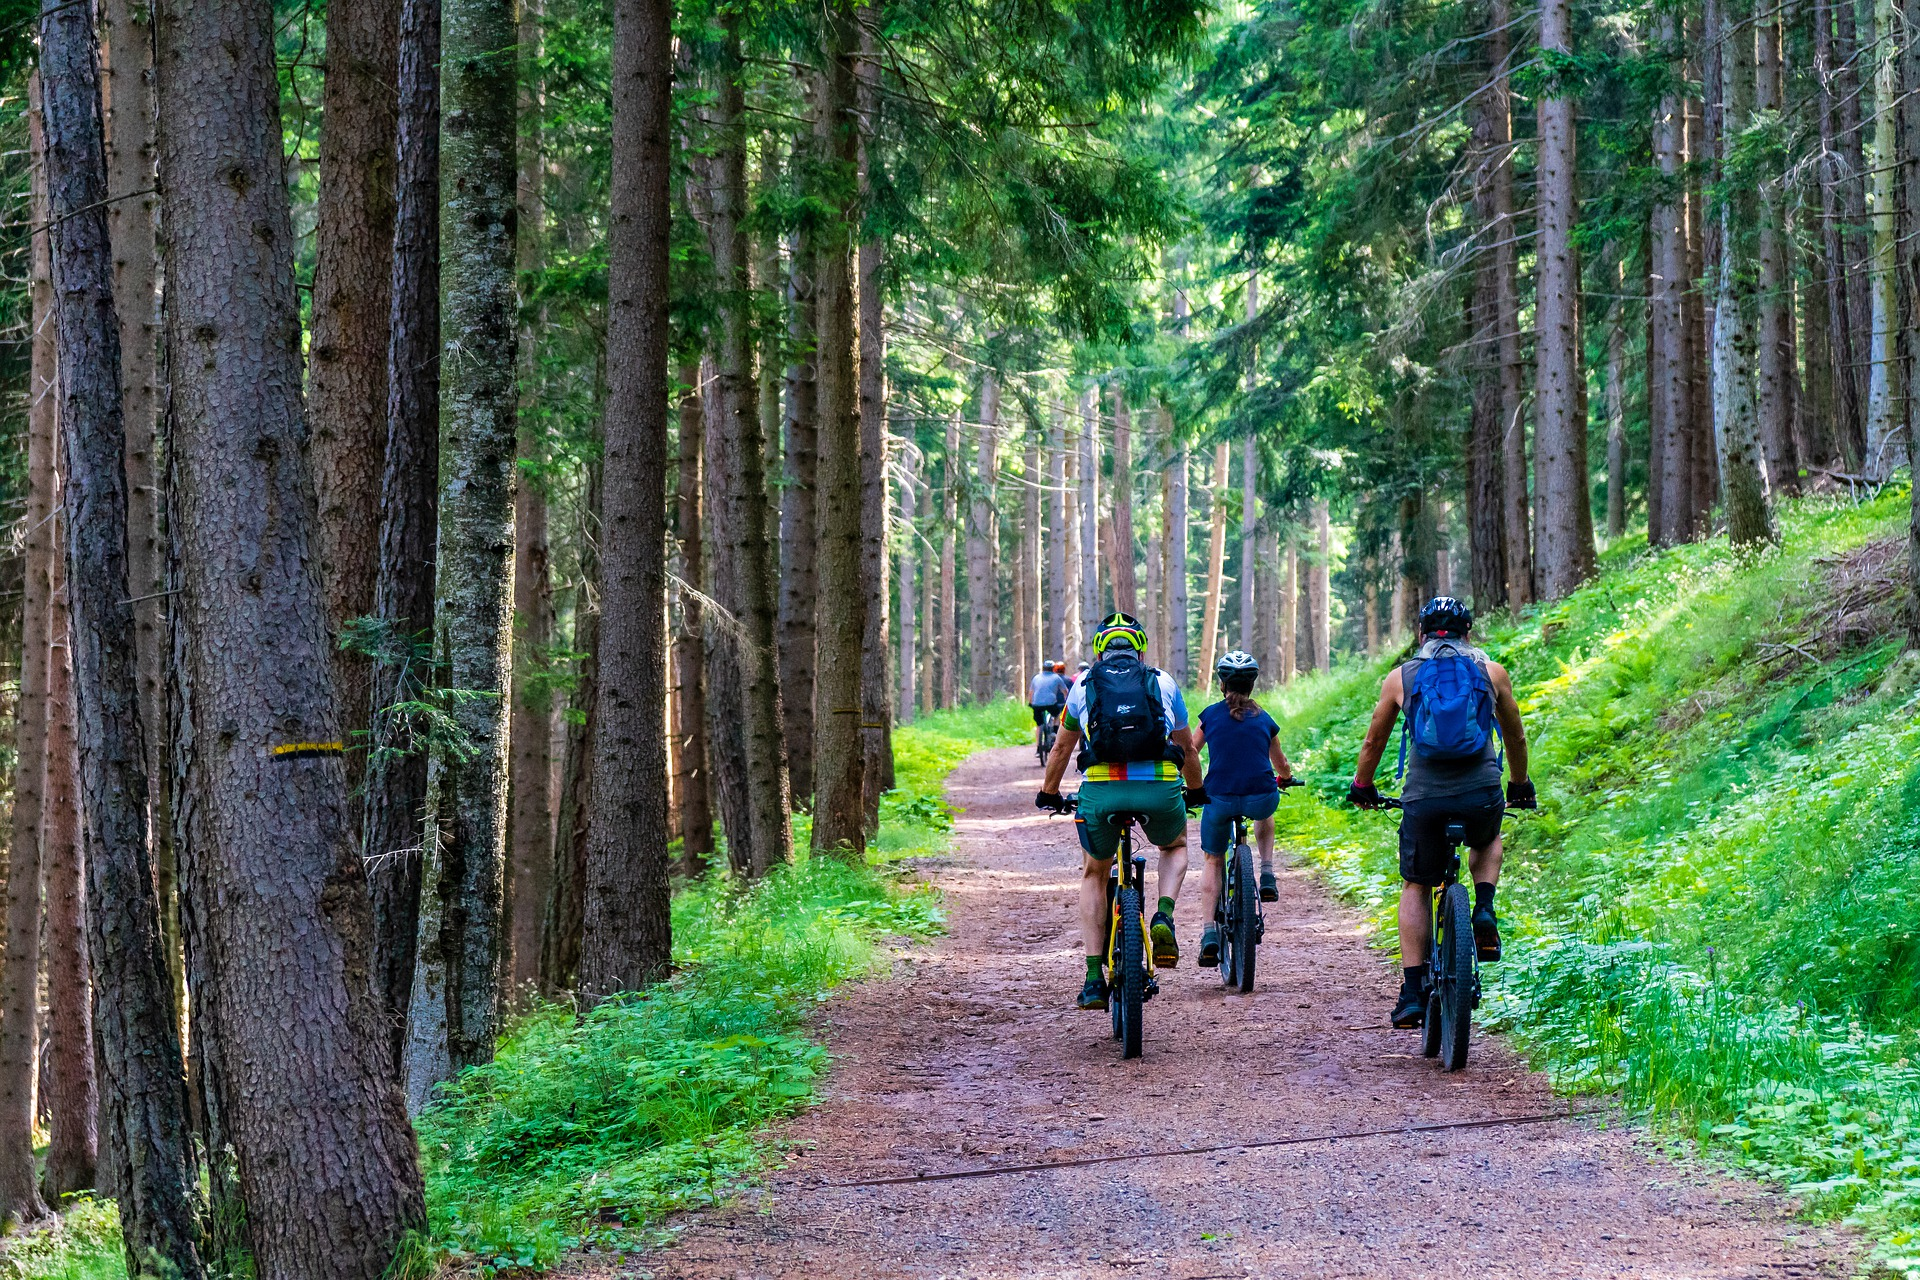 A group of bikers coasting down a heavily forested path.